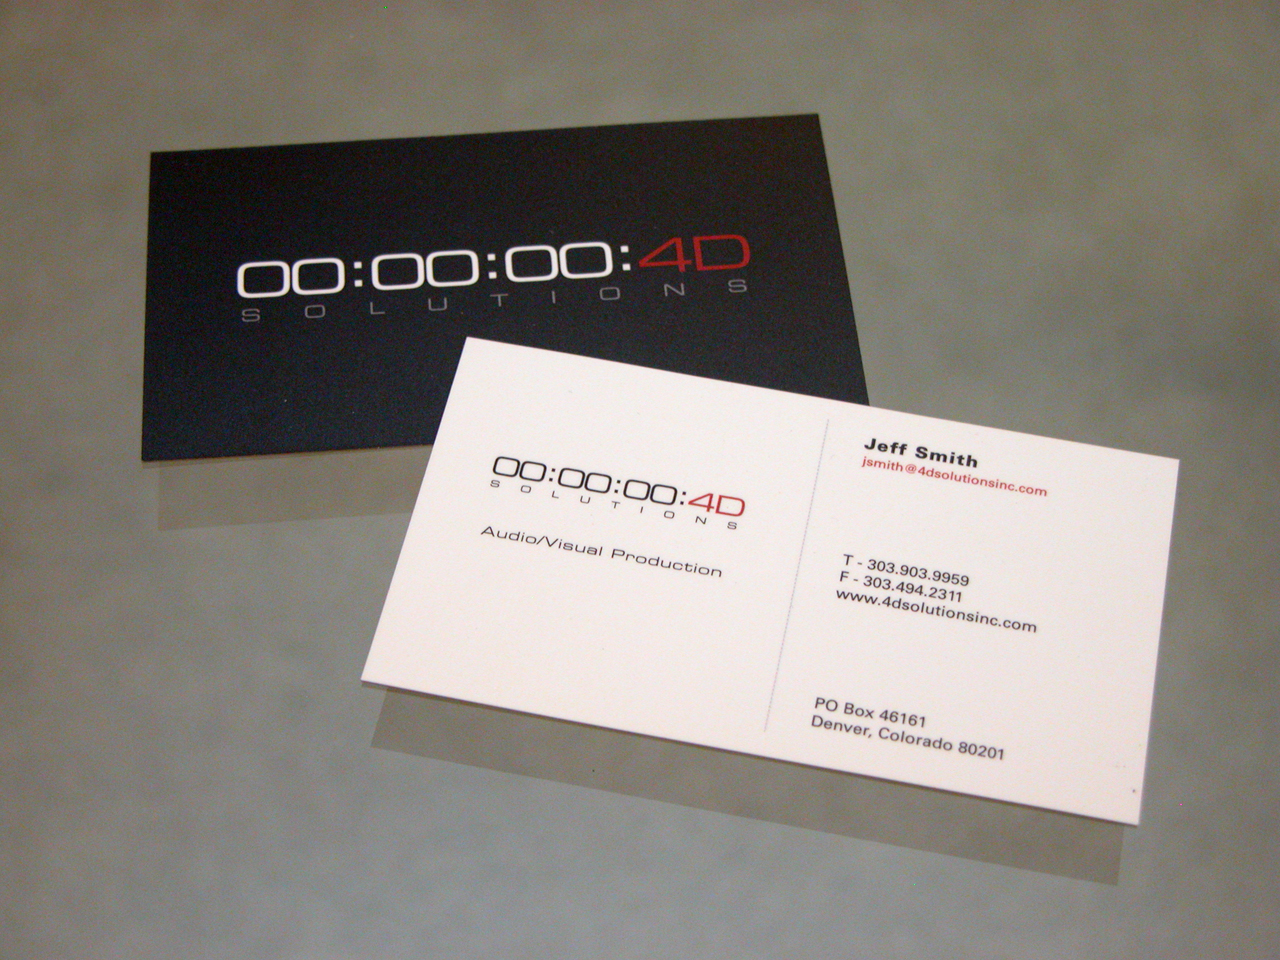 awesome stock of business cards denver business cards design ideas - Business Cards Denver